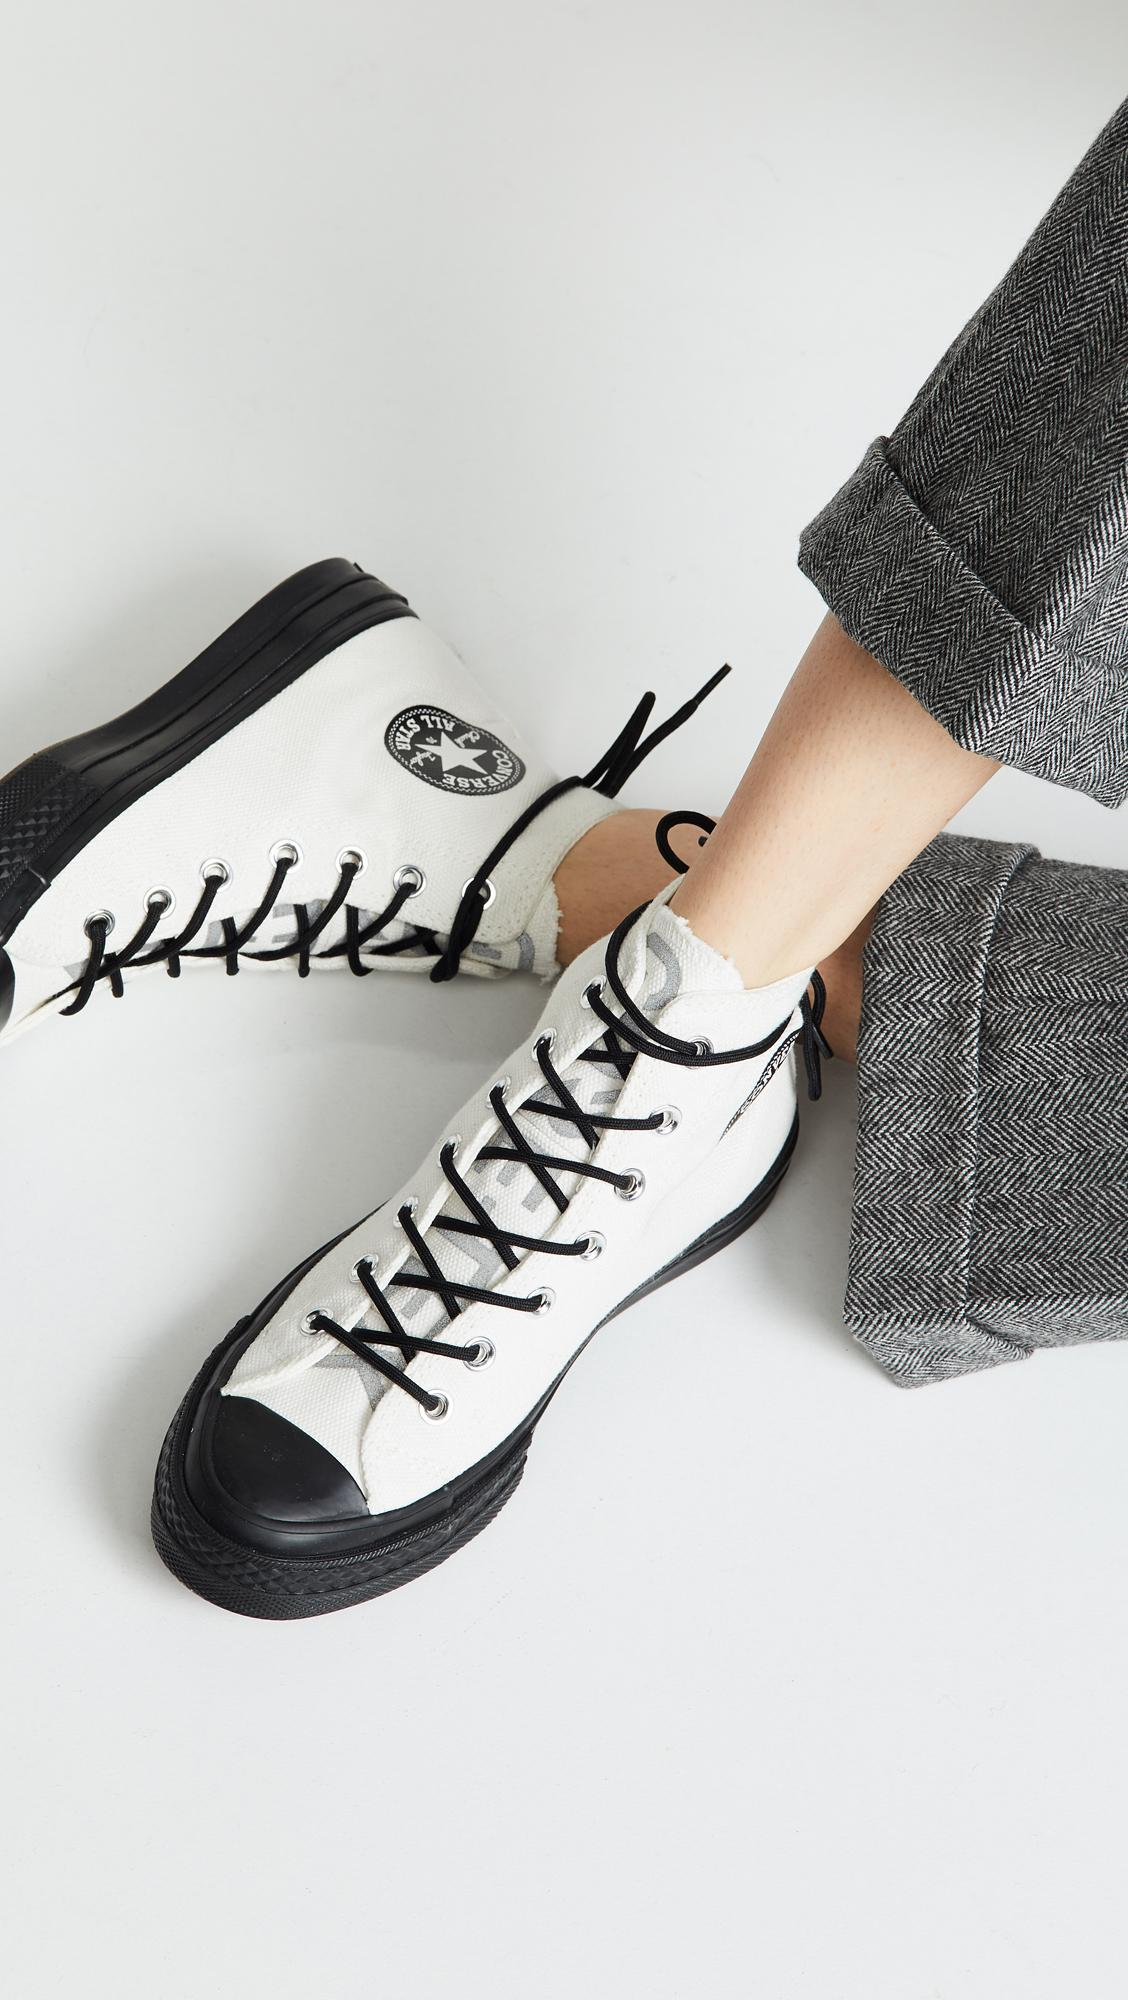 b6c07cac97 Lyst - Converse Chuck 70 Gore Tex High Top Sneakers in White